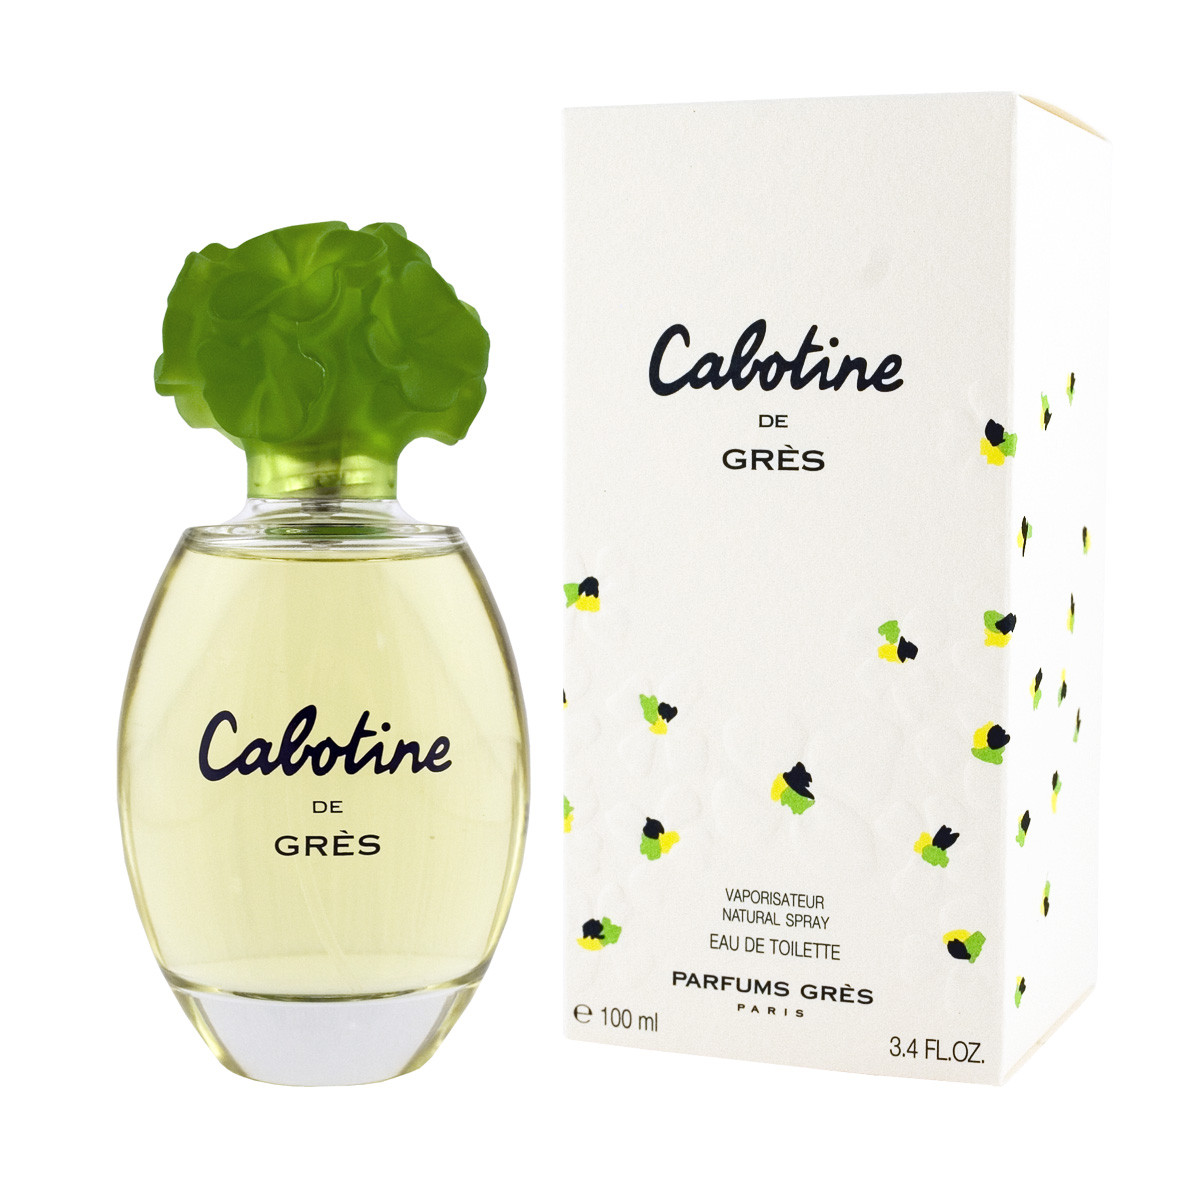 gres cabotine de gres eau de toilette 100 ml woman cabotine de gres gres marken. Black Bedroom Furniture Sets. Home Design Ideas